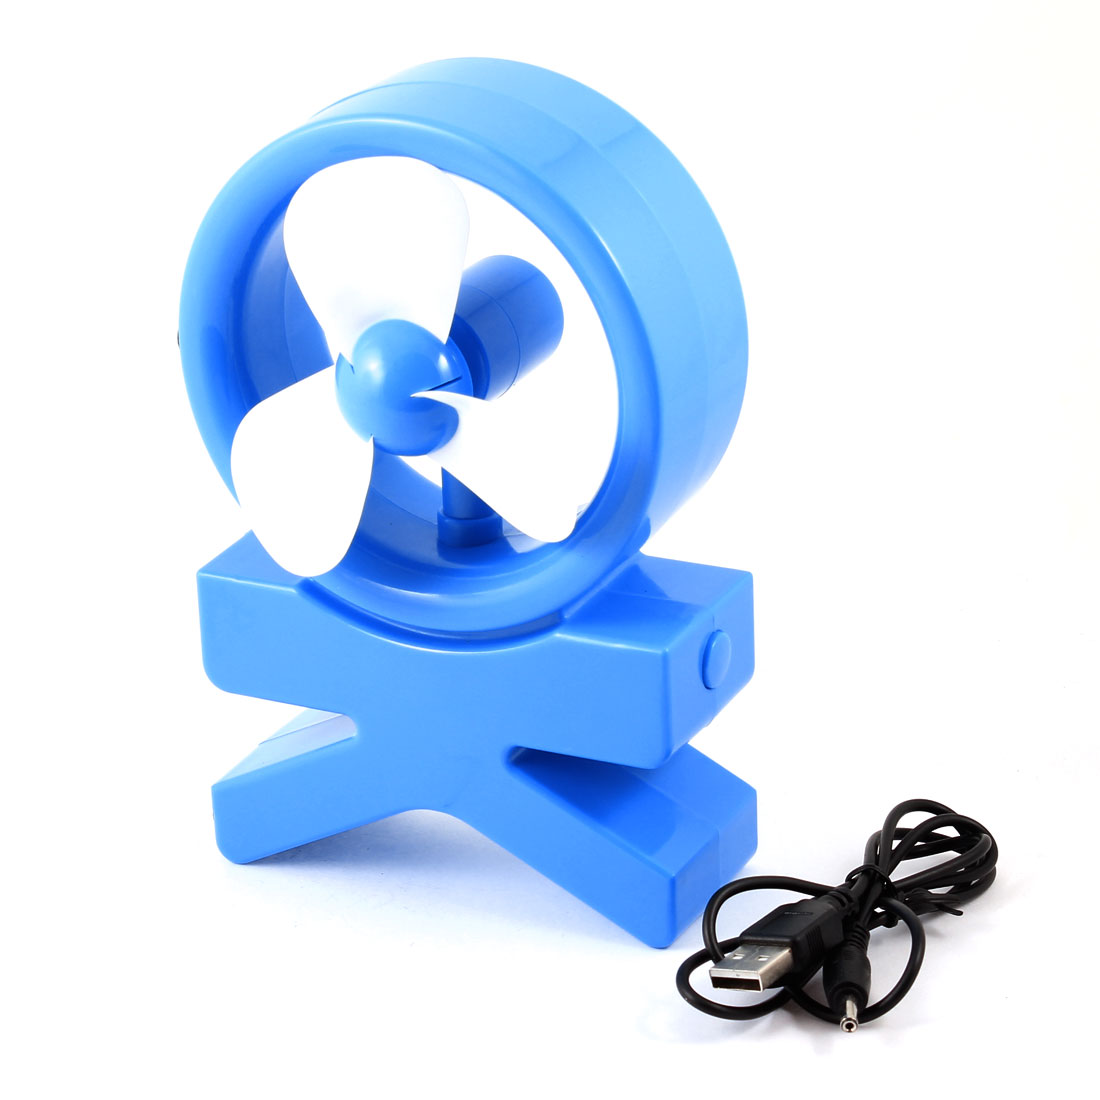 Desktop Notebook Plastic 3 Flabellums Mini USB Cooling Cooler Fan Blue White